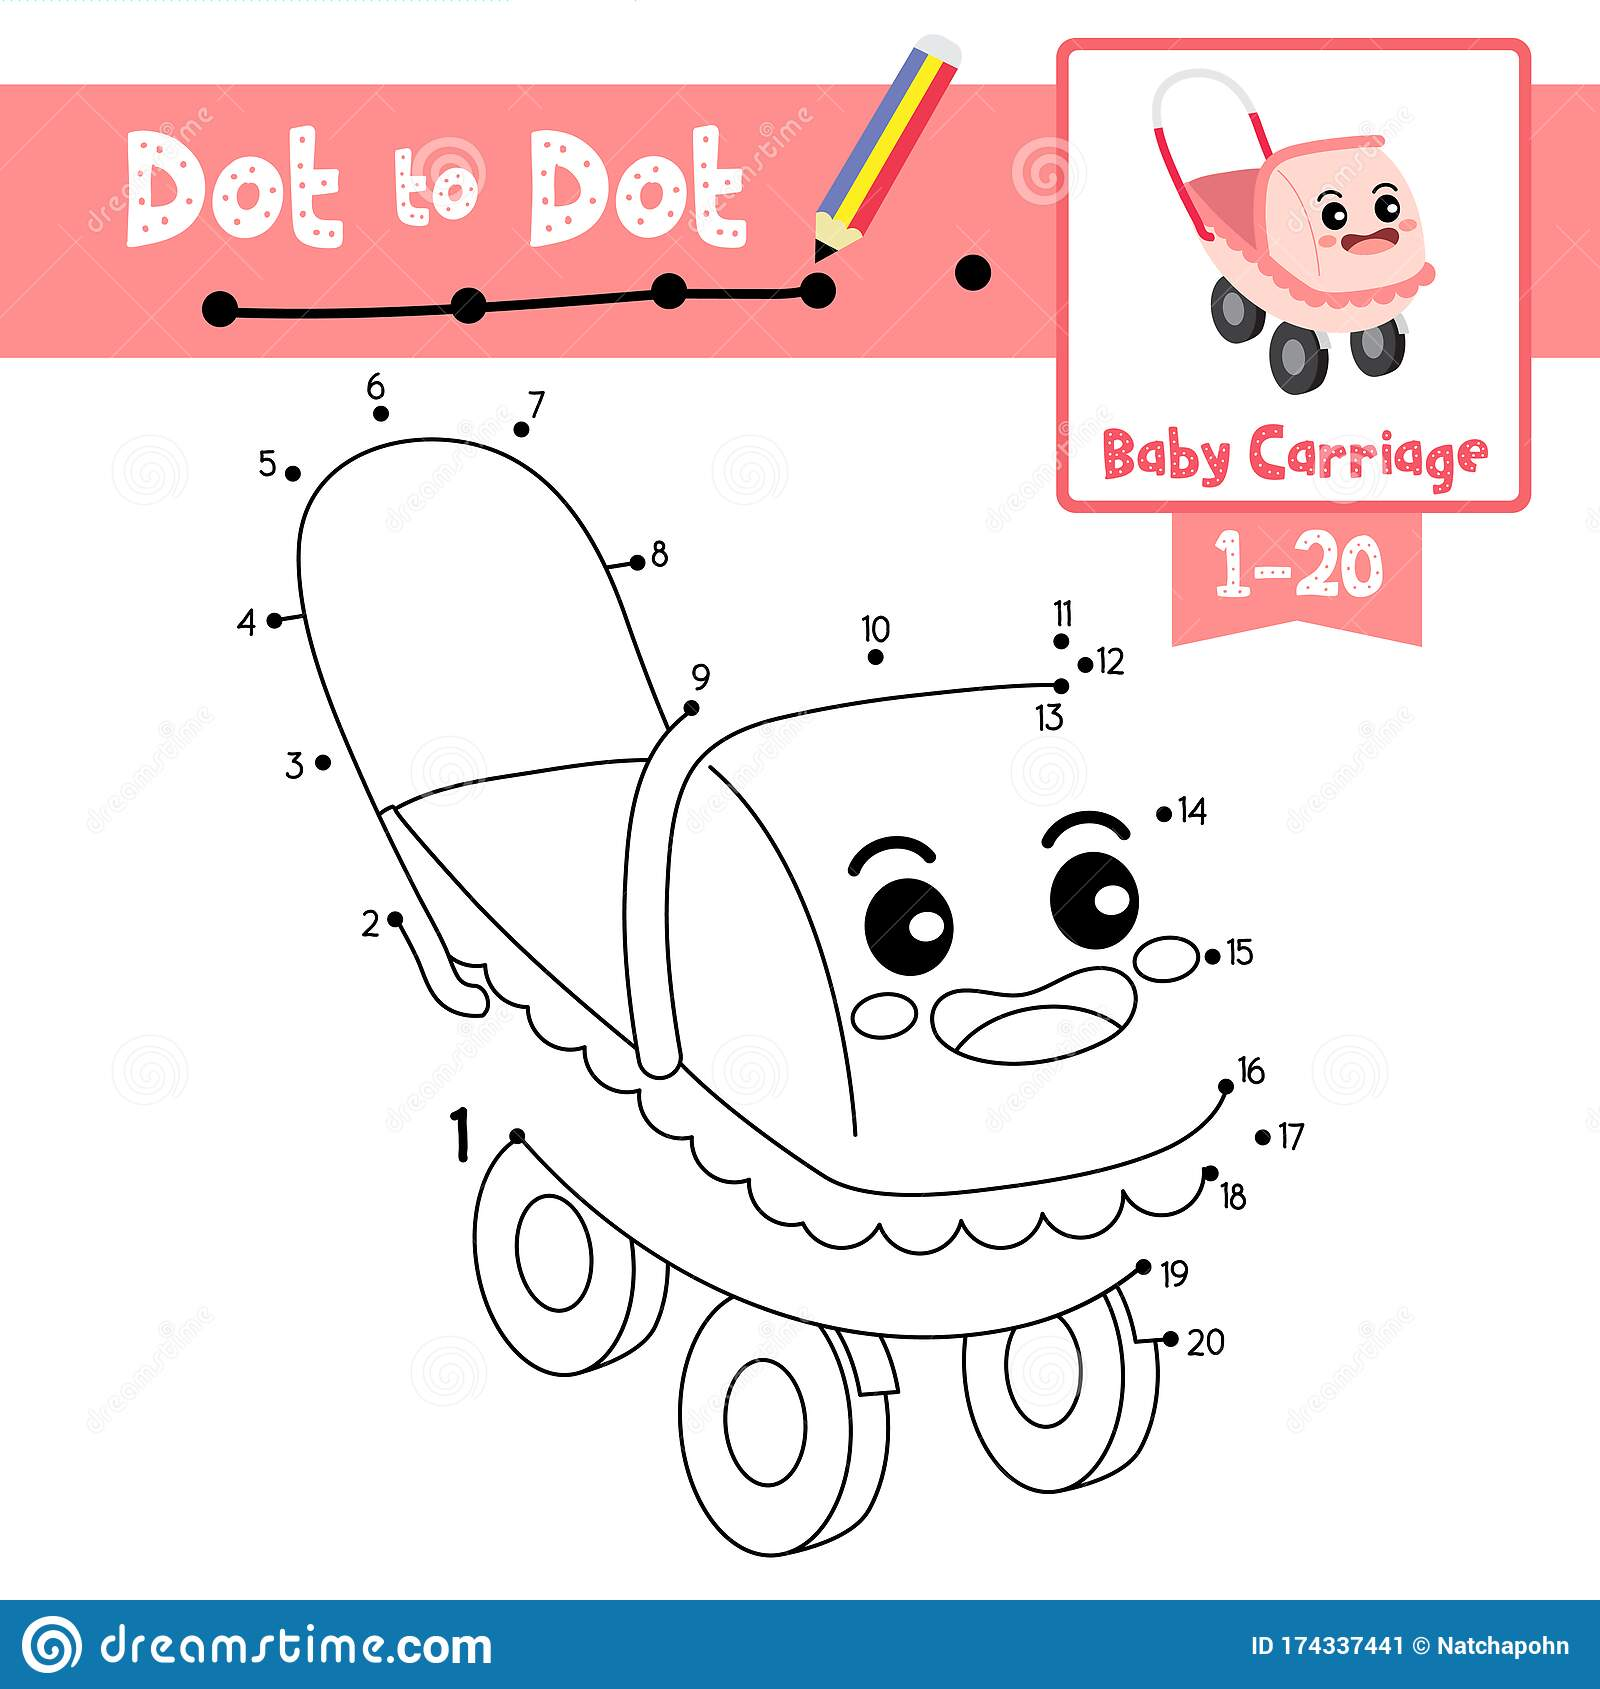 Dot To Dot Educational Game And Coloring Book Baby Carriage Cartoon Character Perspective View Vector Illustration Stock Vector Illustration Of Page Homework 174337441